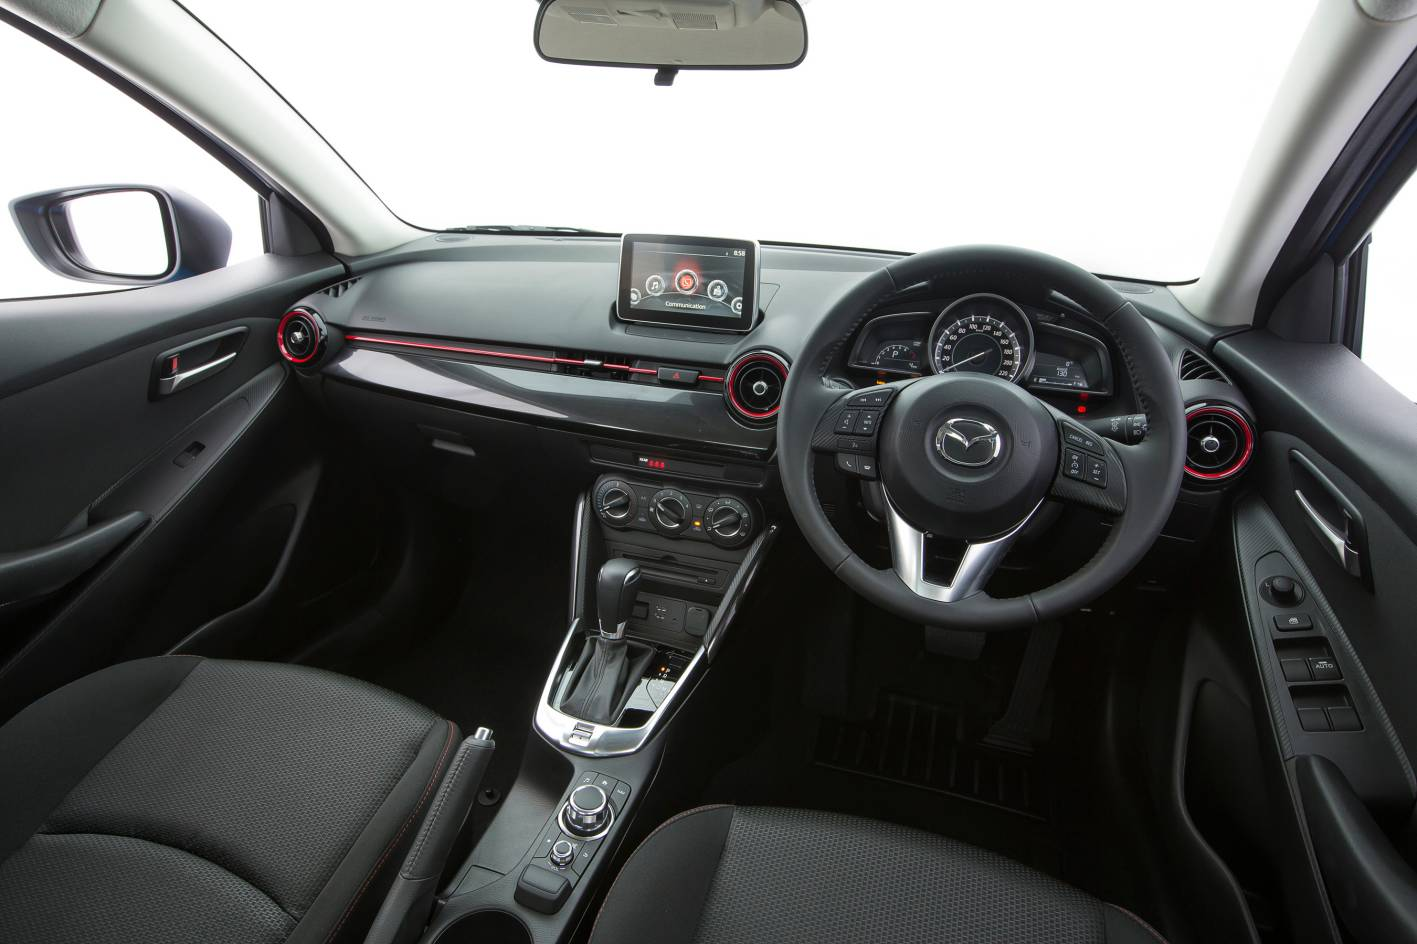 mazda 6 2010 how to take off dash